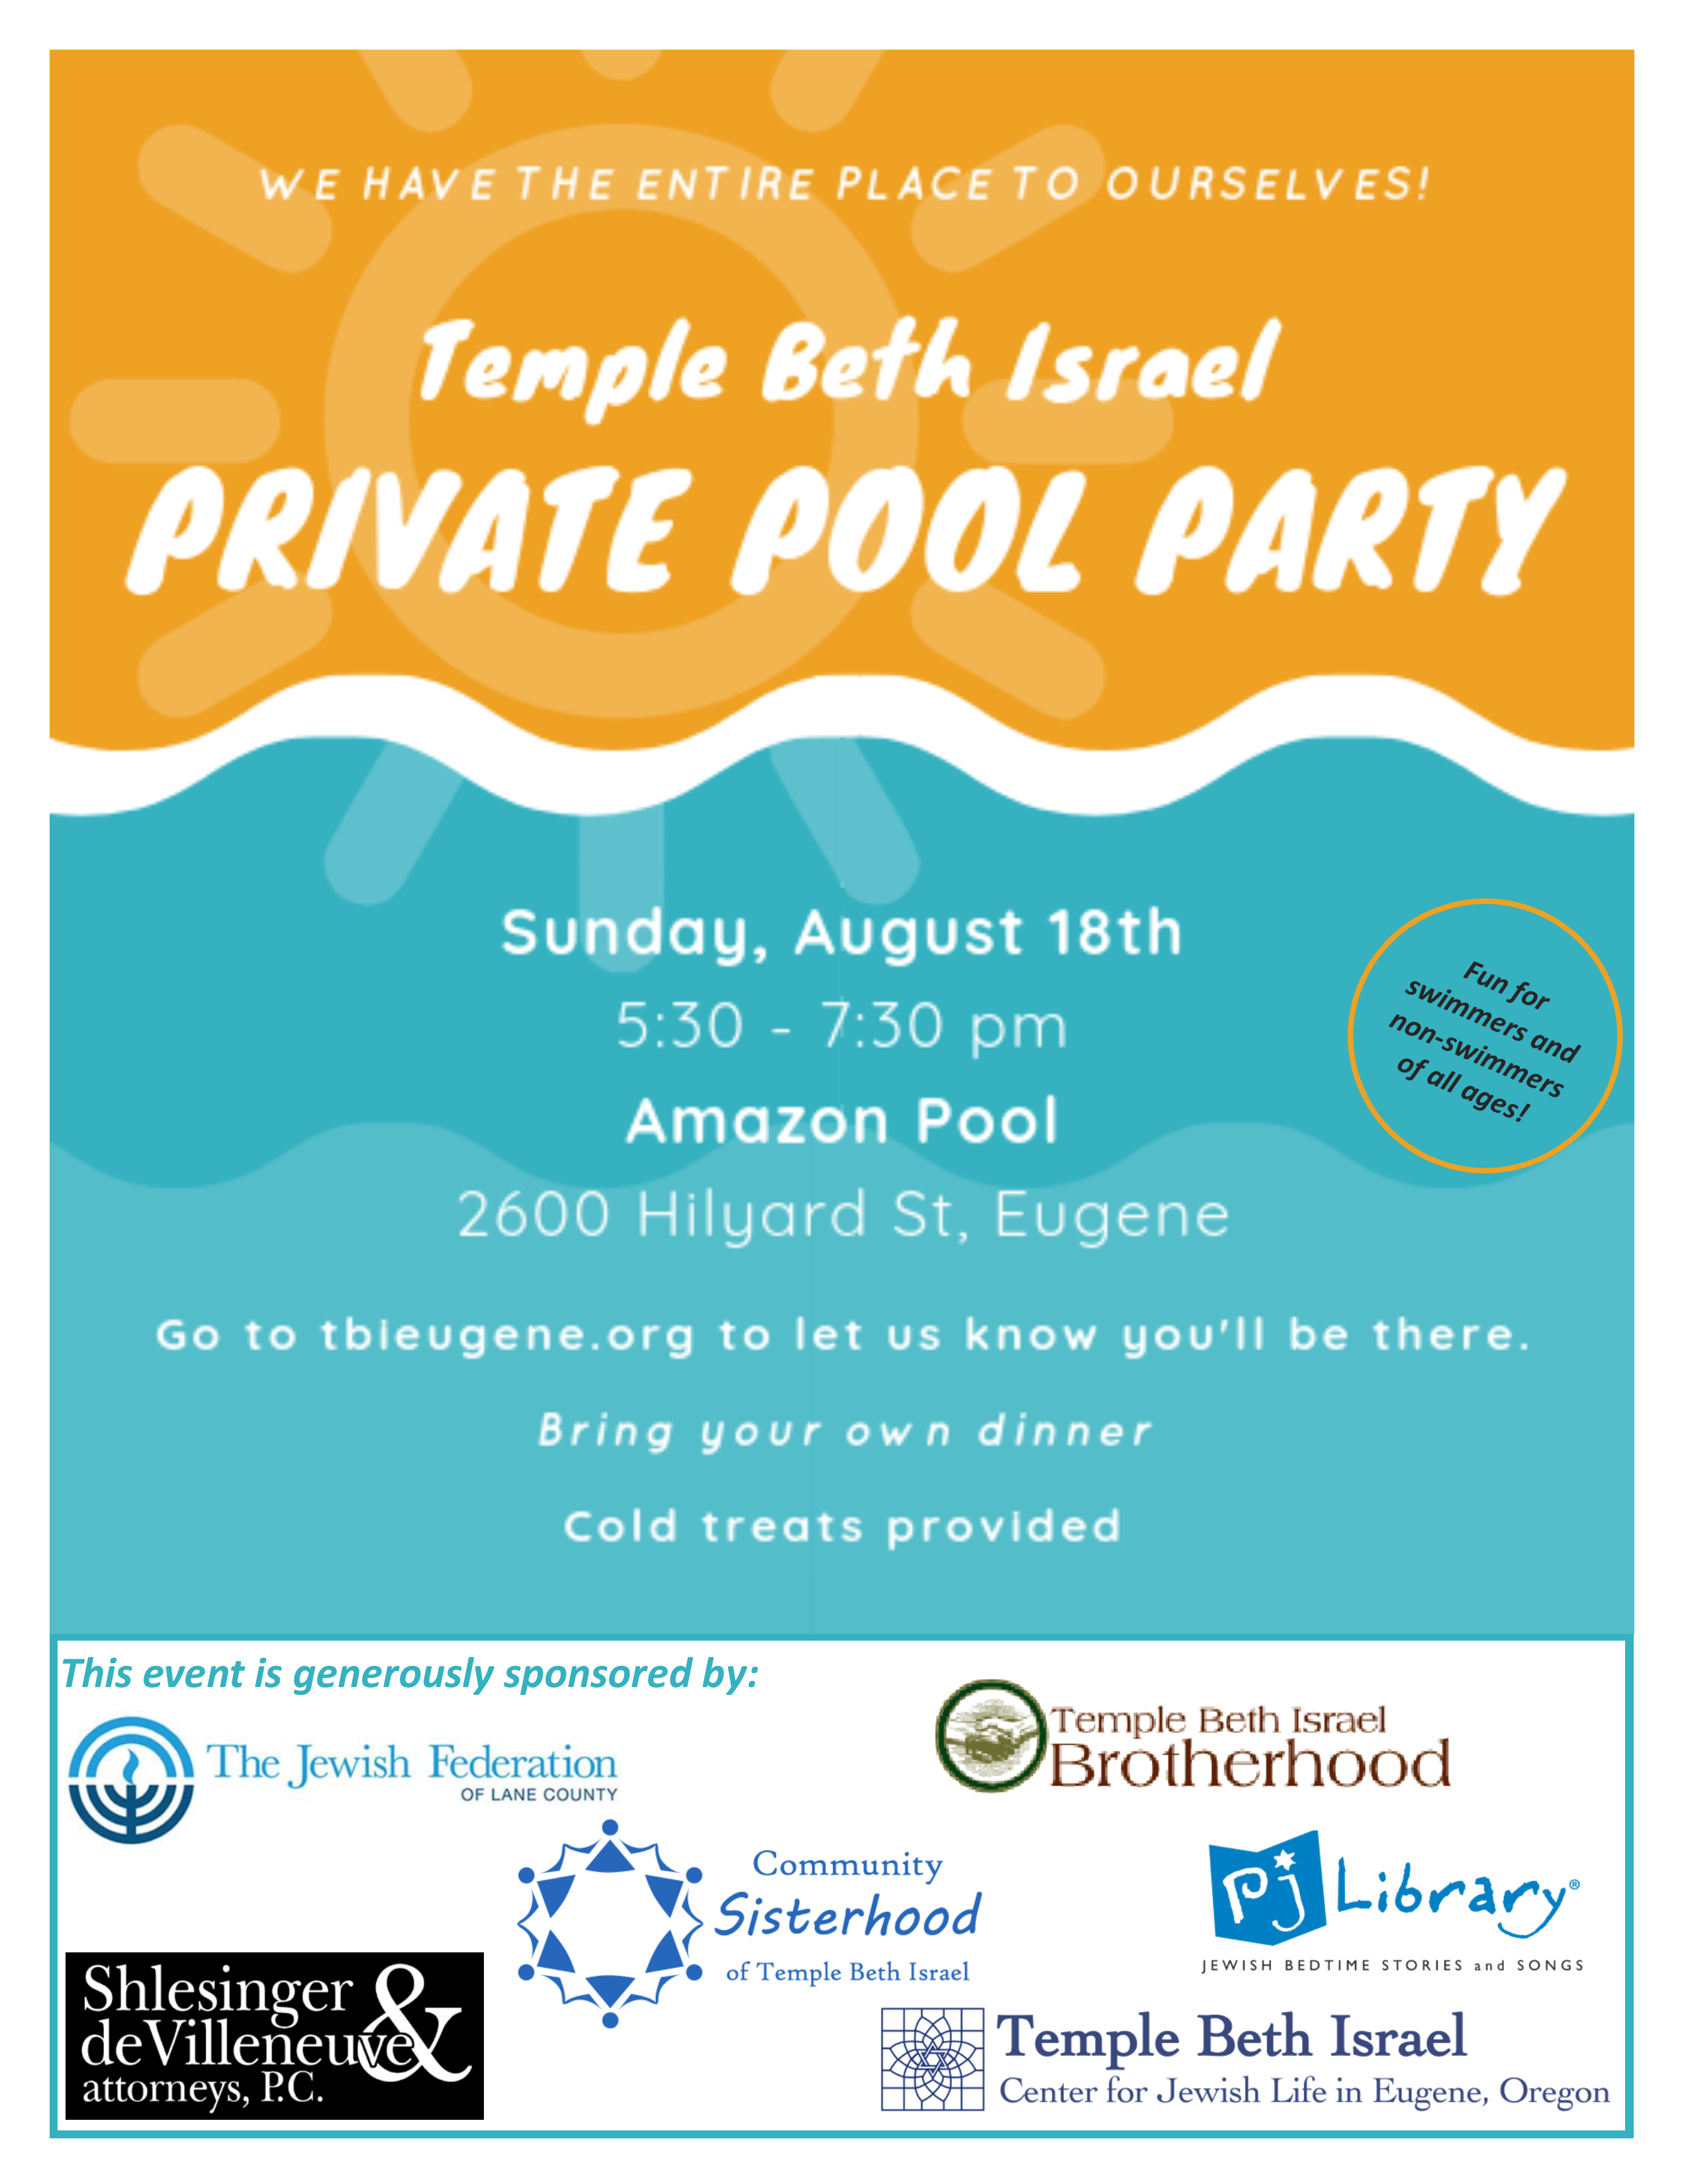 Temple Beth Israel – Center for Jewish Life in Eugene, Oregon